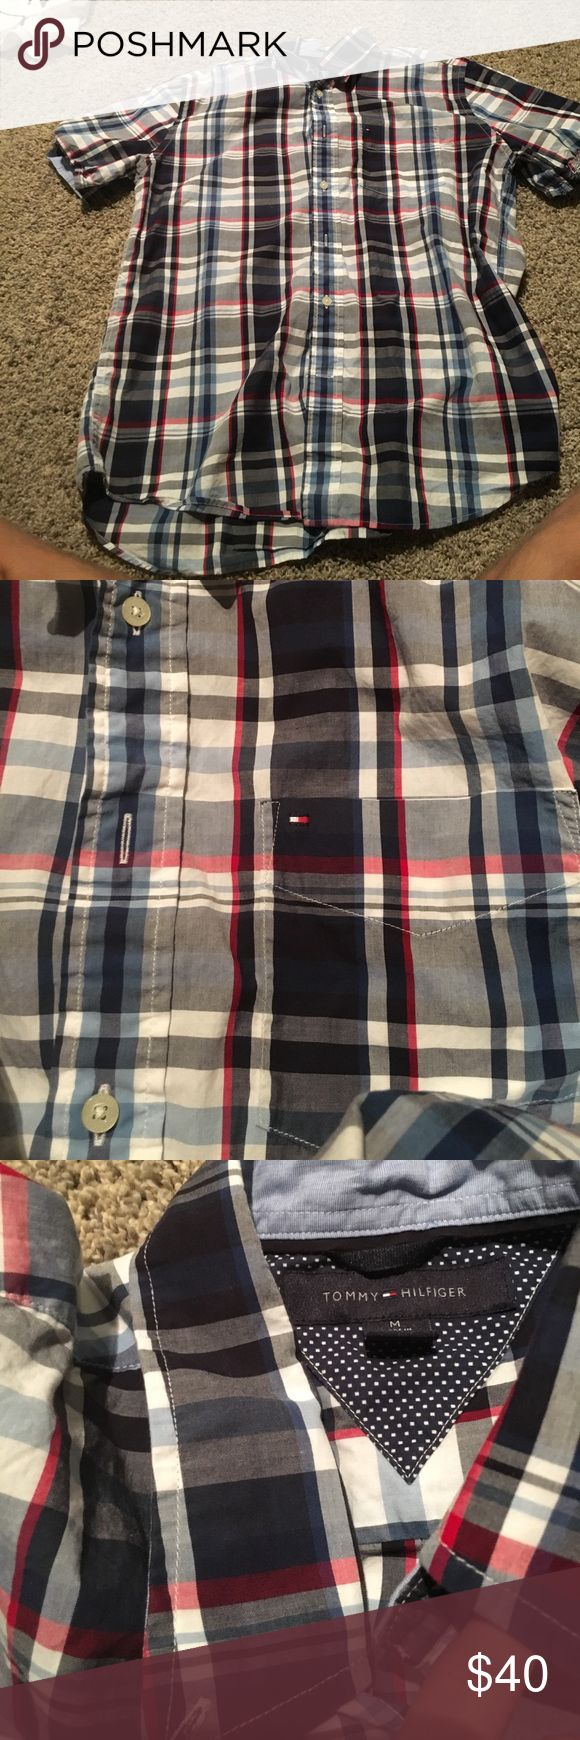 Selling this Men's Tommy Hilfiger Short Sleeve Dress Shirt on Poshmark! My username is: rudofski3. #shopmycloset #poshmark #fashion #shopping #style #forsale #Tommy Hilfiger #Other